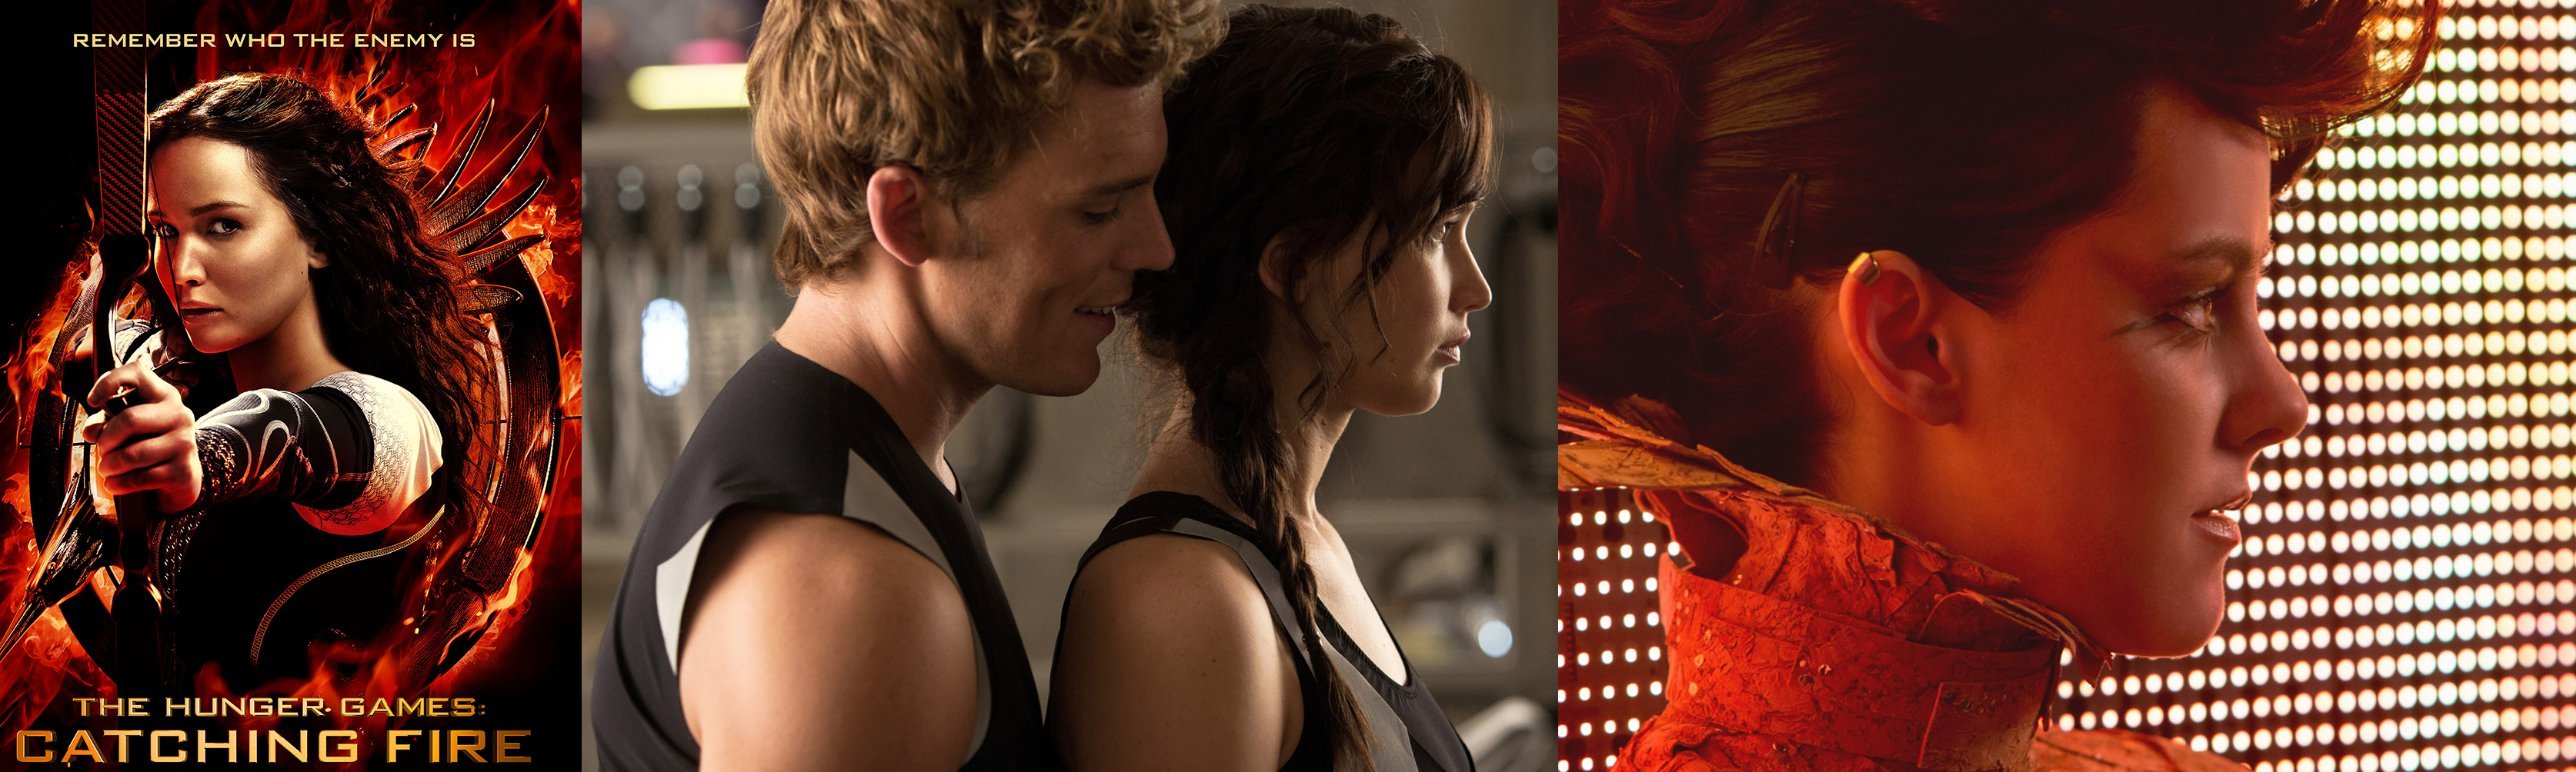 The Hunger Games Catching Fire 2013 Movie Review Absolutebadasses